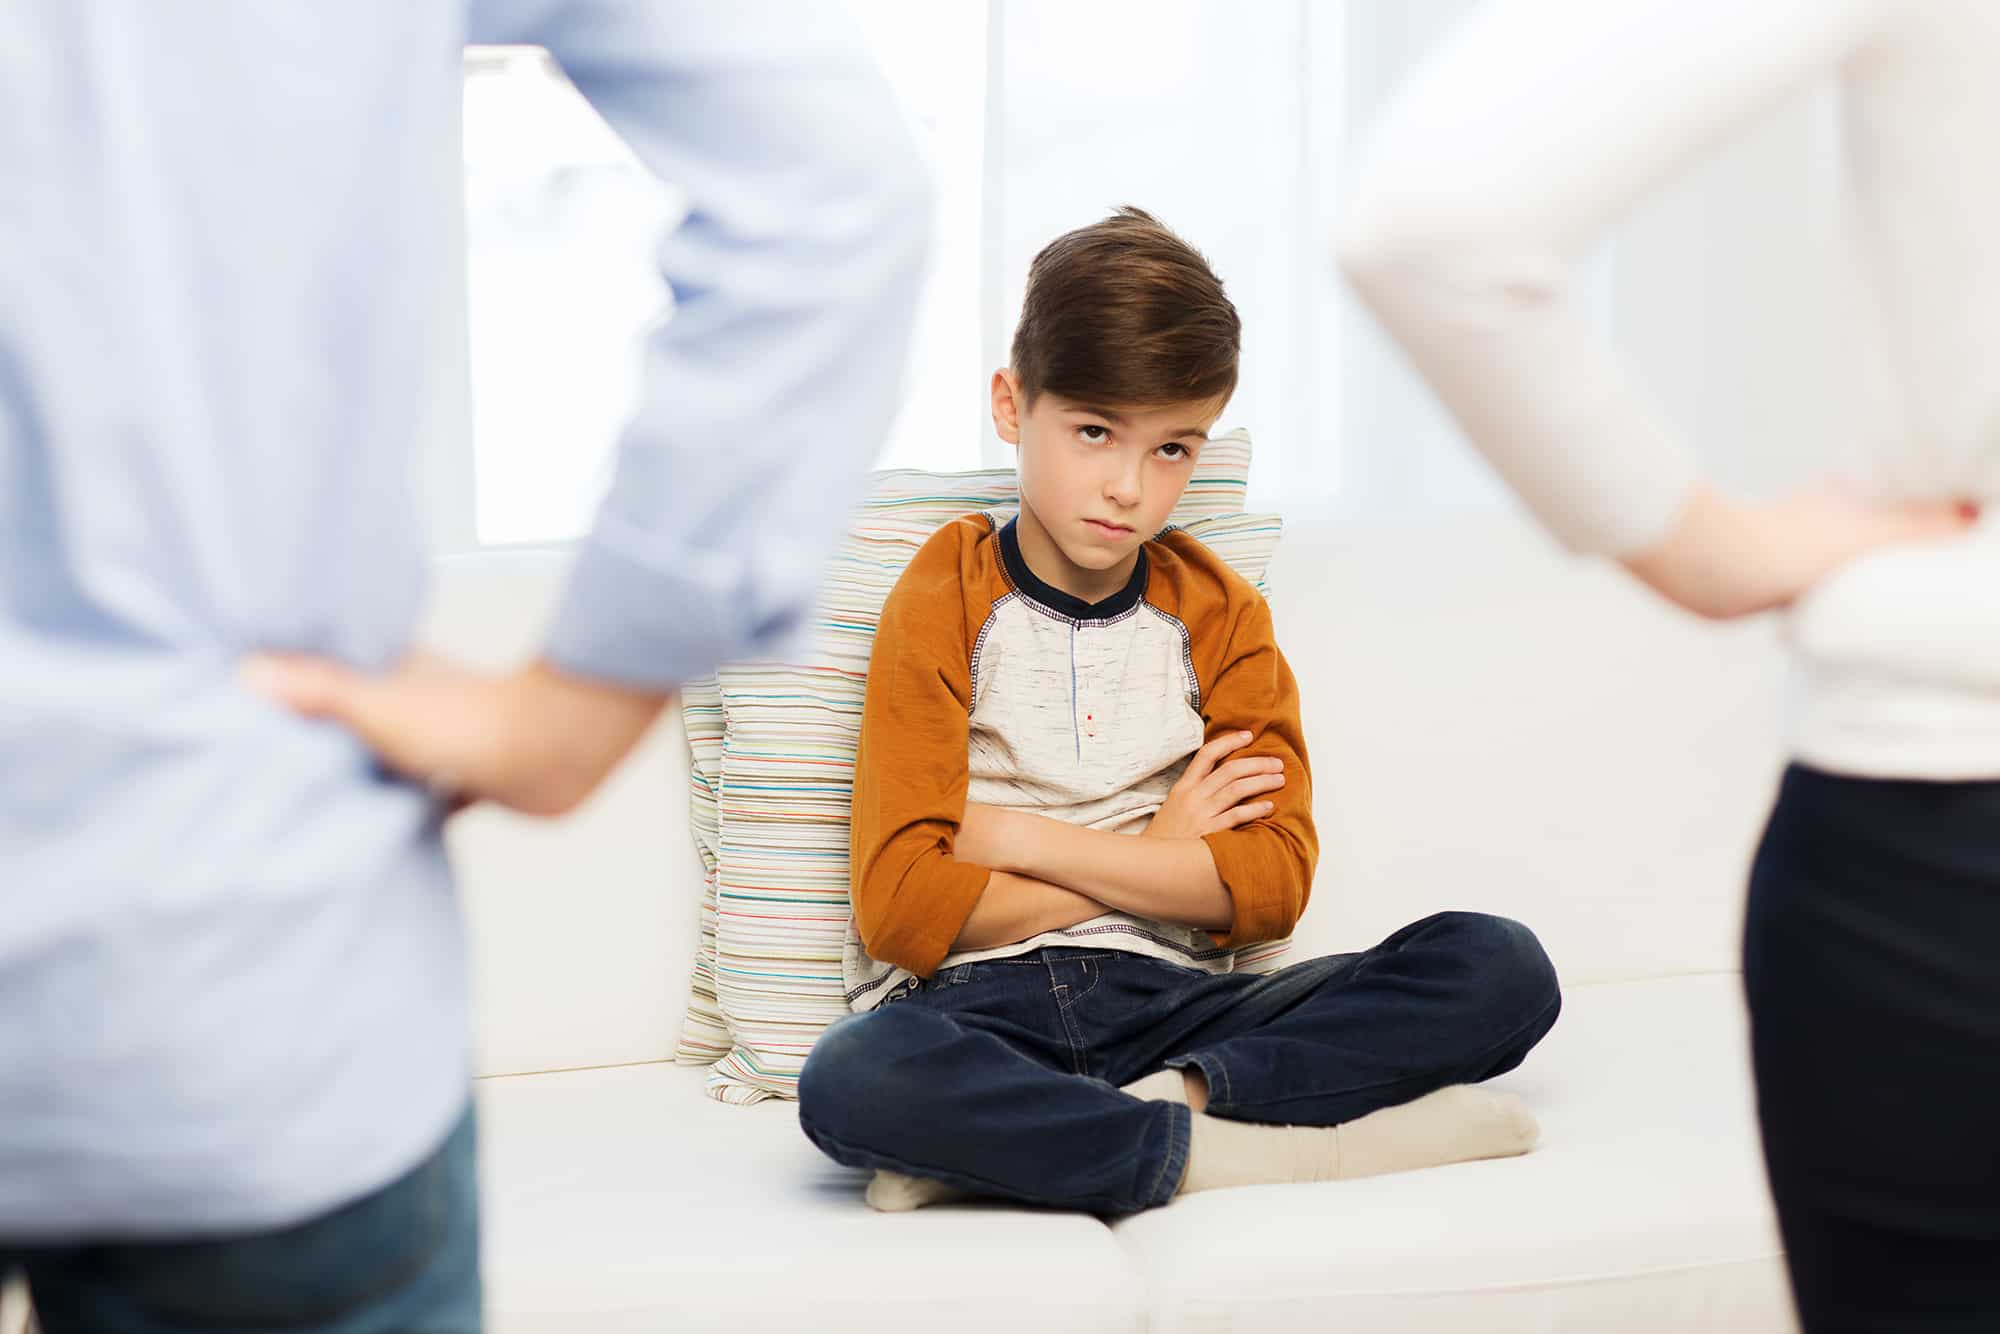 What to Do When Your Child Acts Out